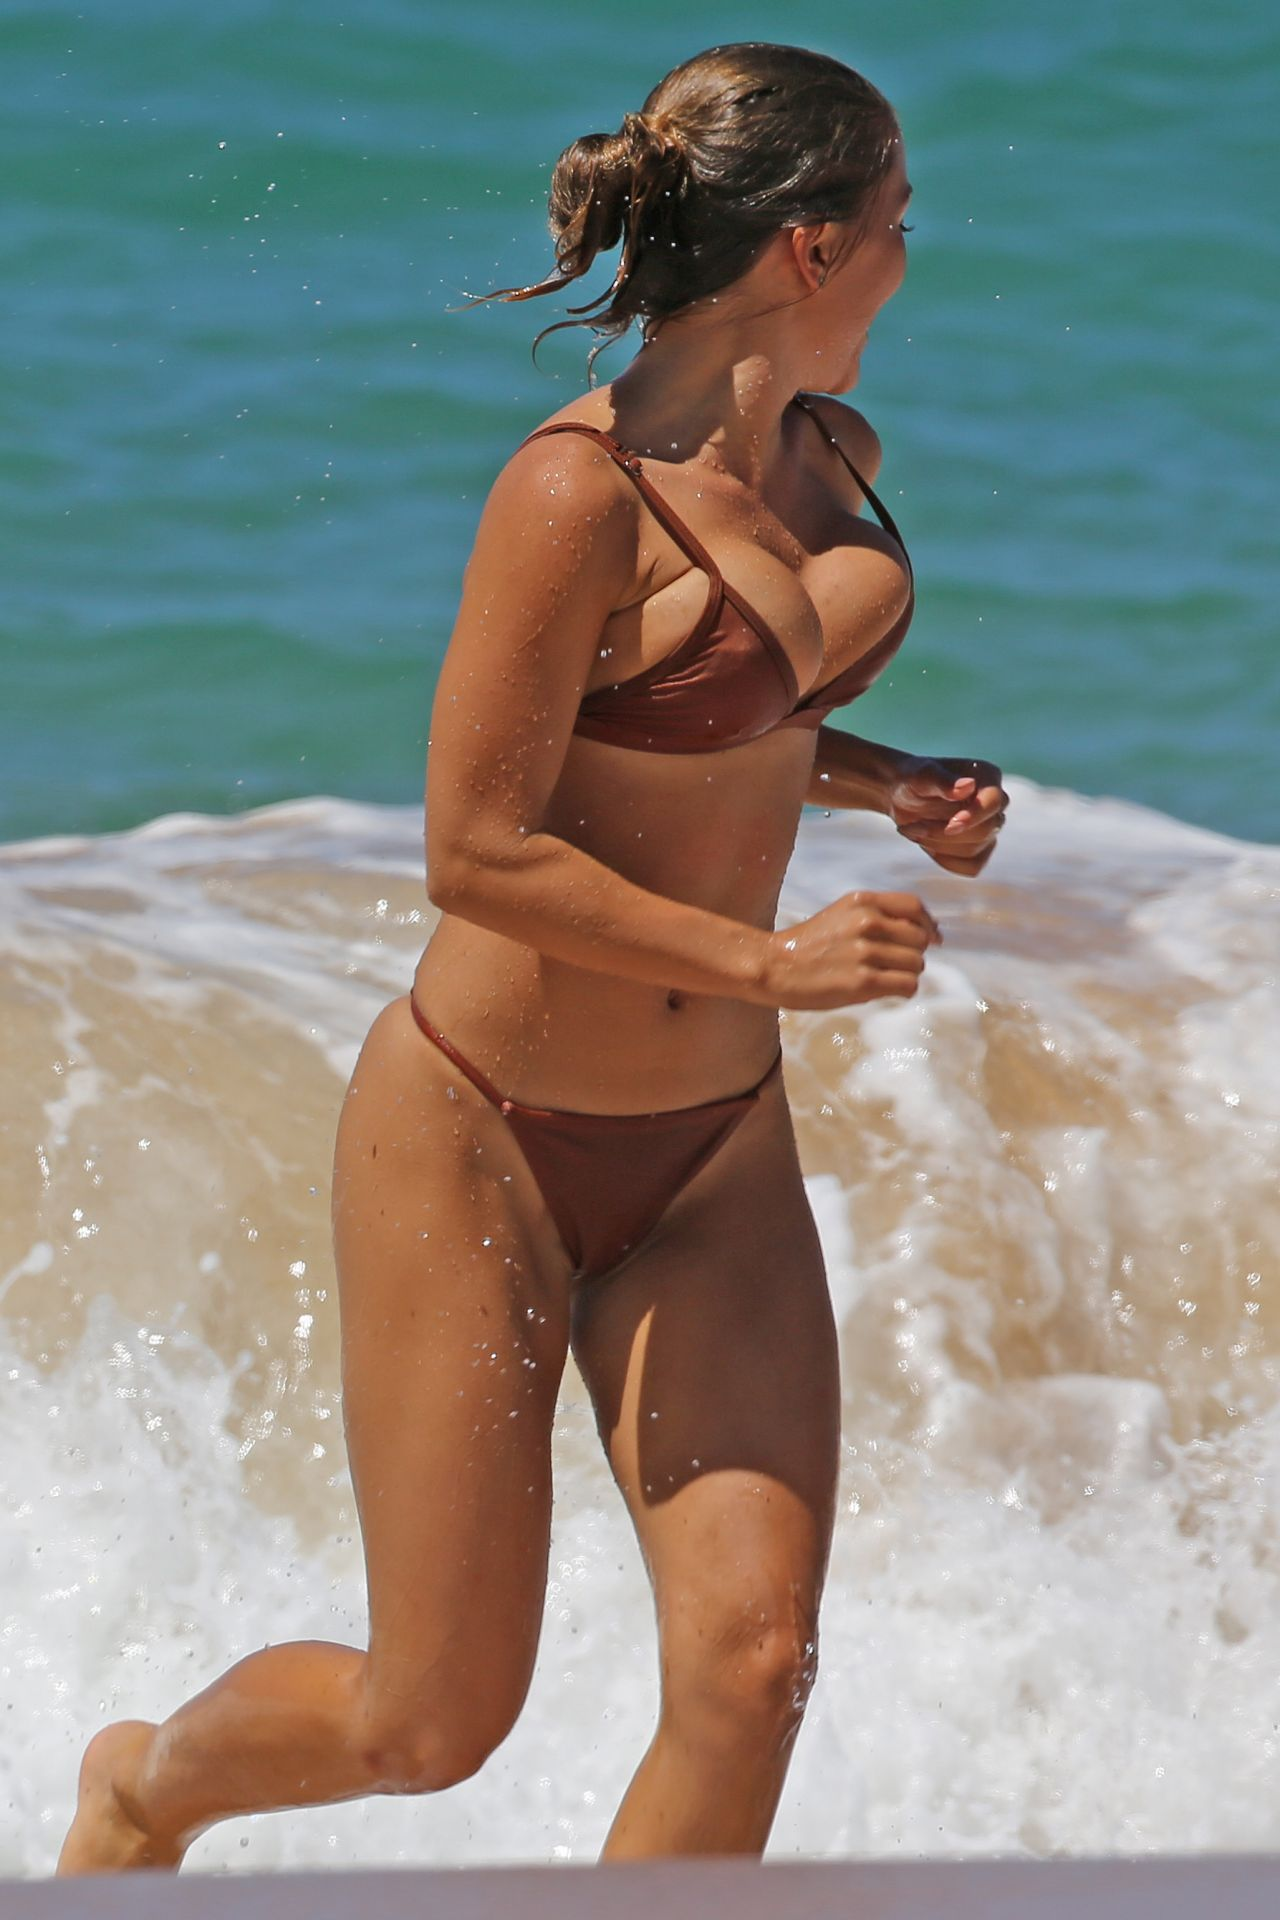 Cameron diaz bikini photos